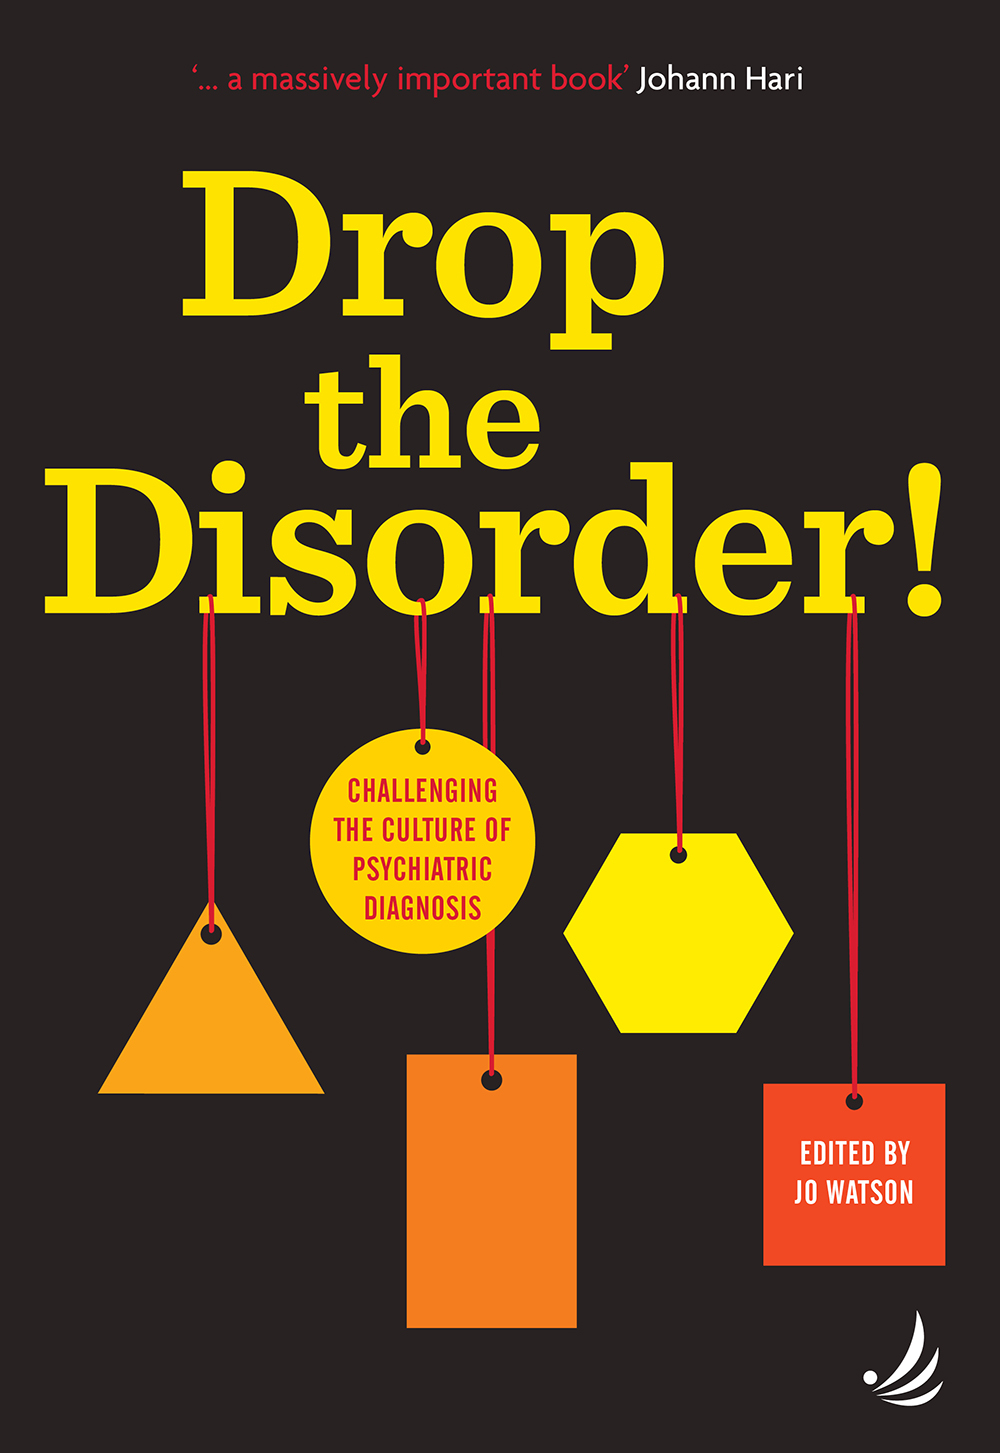 Drop the Disorder! - The Book Launch